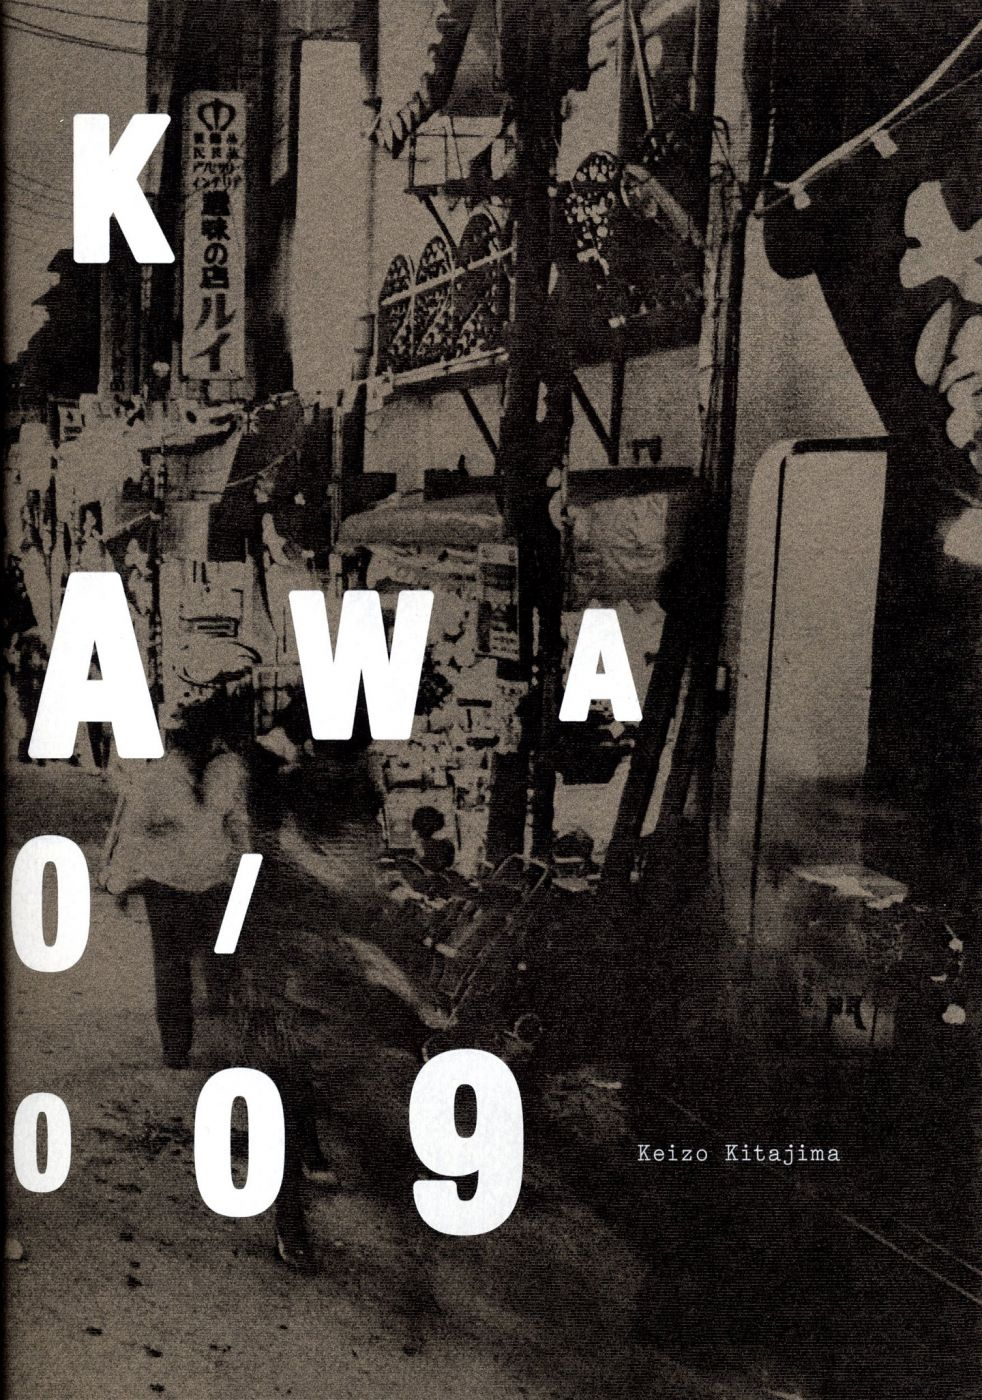 Keizo Kitajima: Back in Okinawa 1980/2009, Limited Edition [SIGNED]